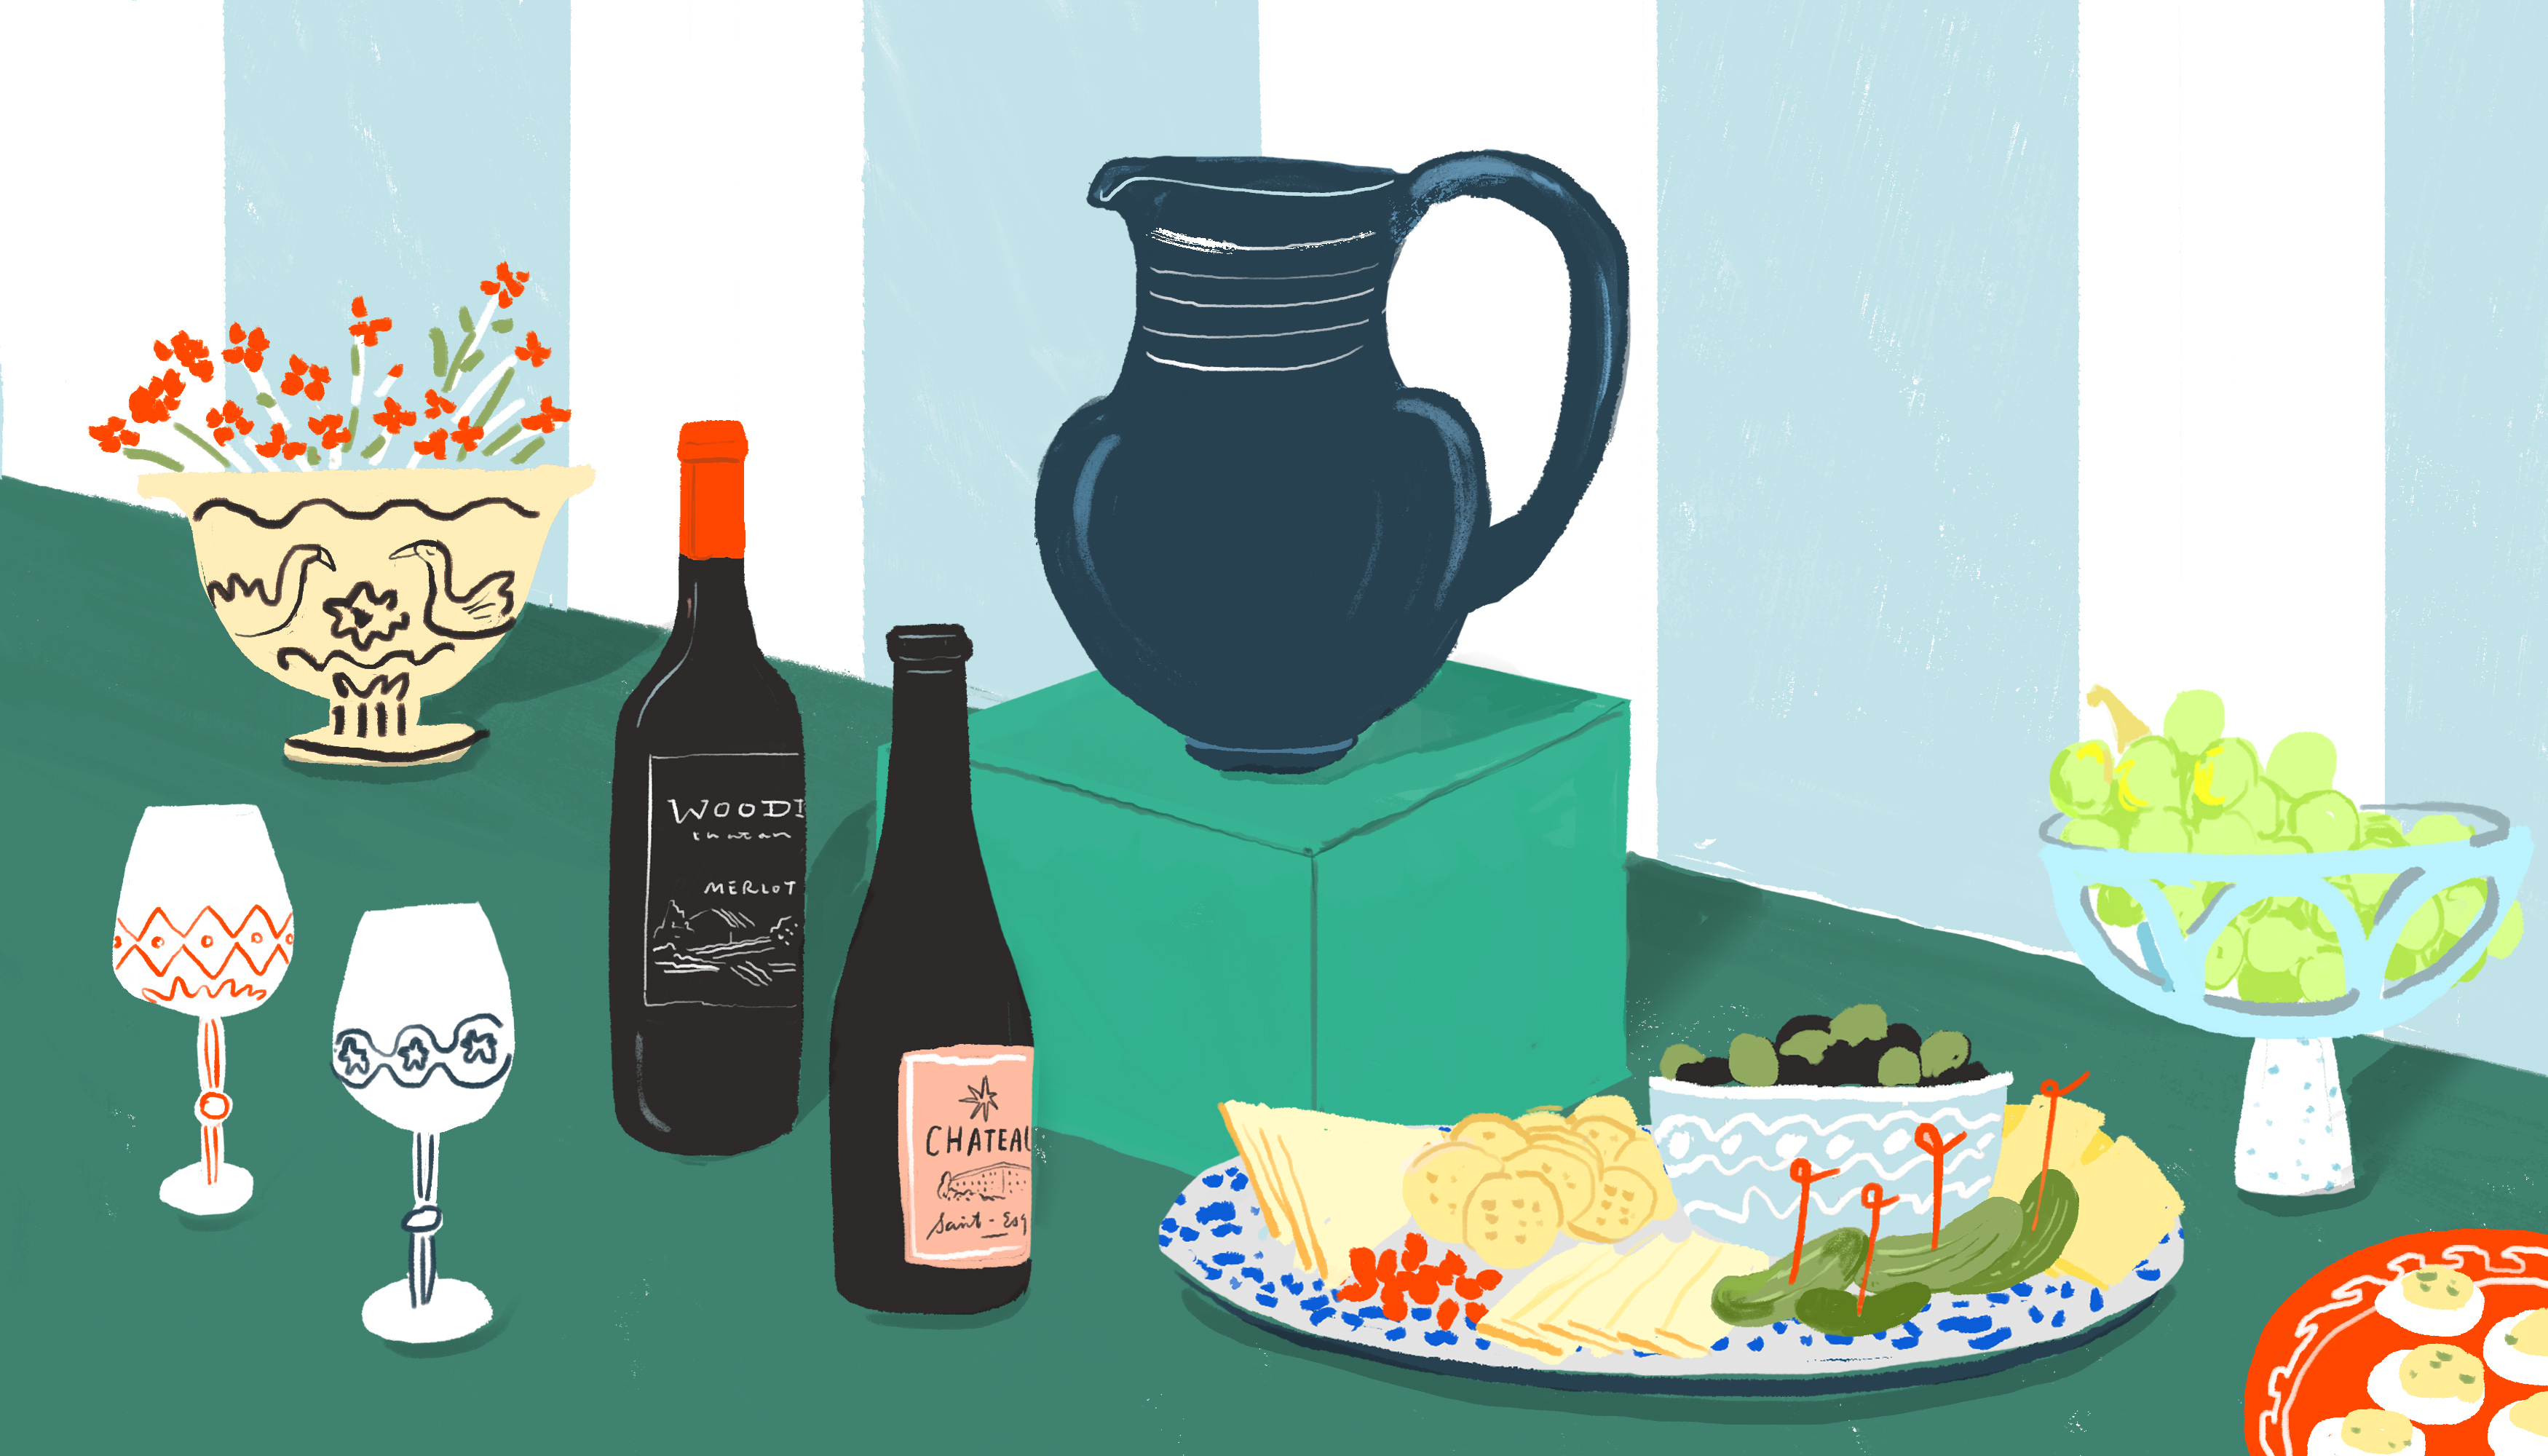 A dark blue, hand crafted pitcher sits on a modern pedestal in a table setting. There are bottles of french wine, decorative glasses and an abundant charcuteries board alongside the pitcher. Illustration.